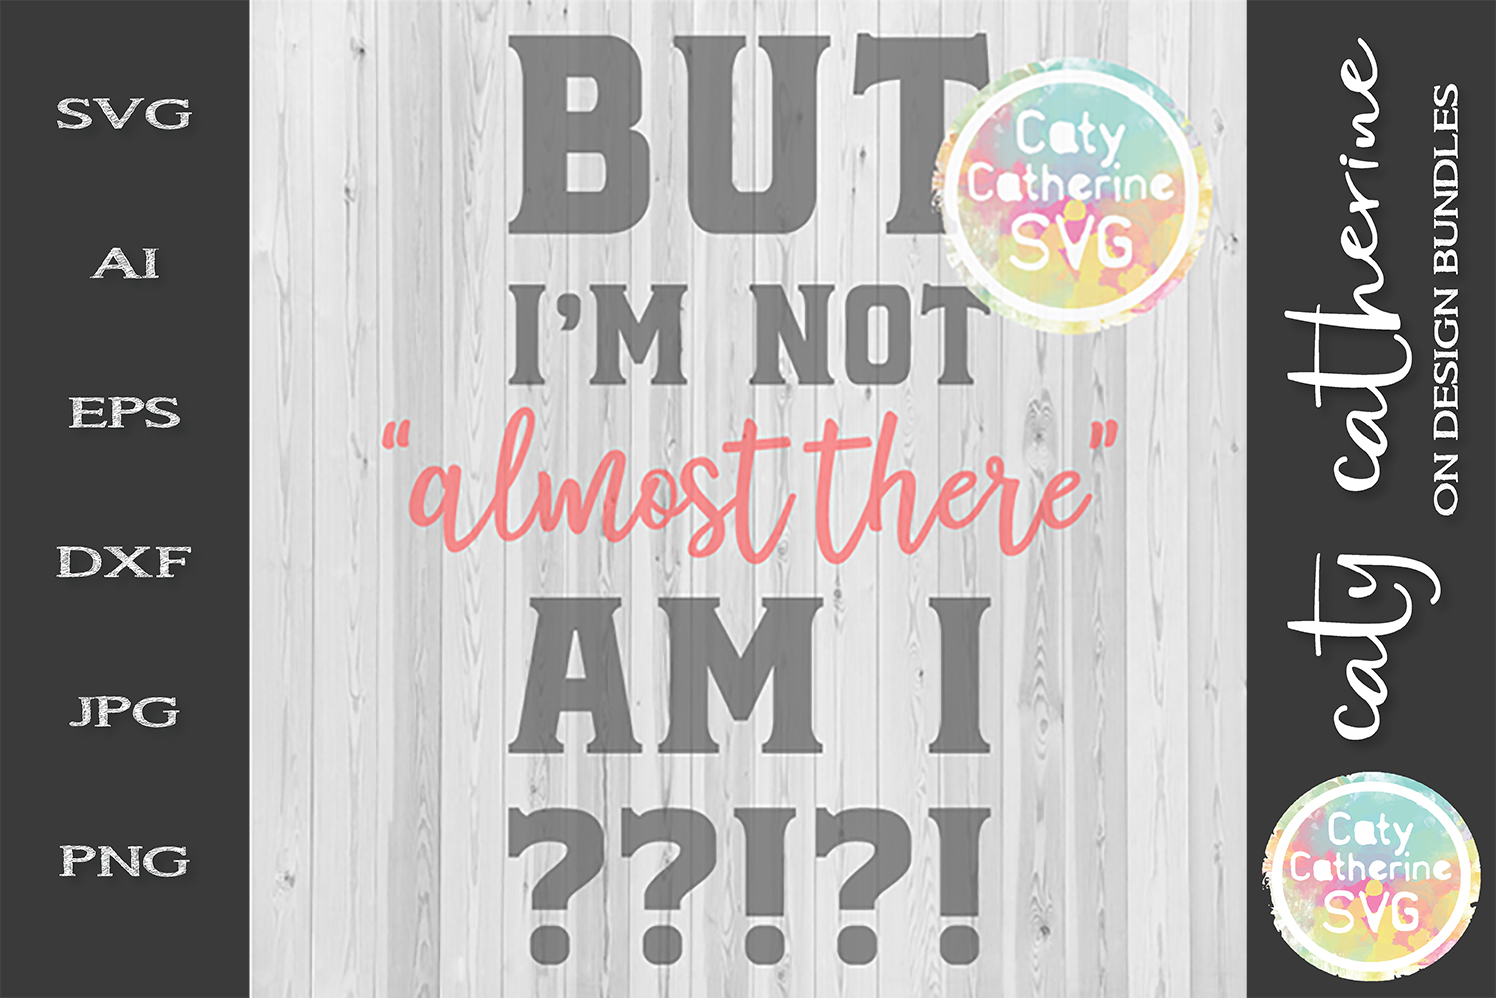 But I'm Not Almost There Am I? SVG Cut File example image 1